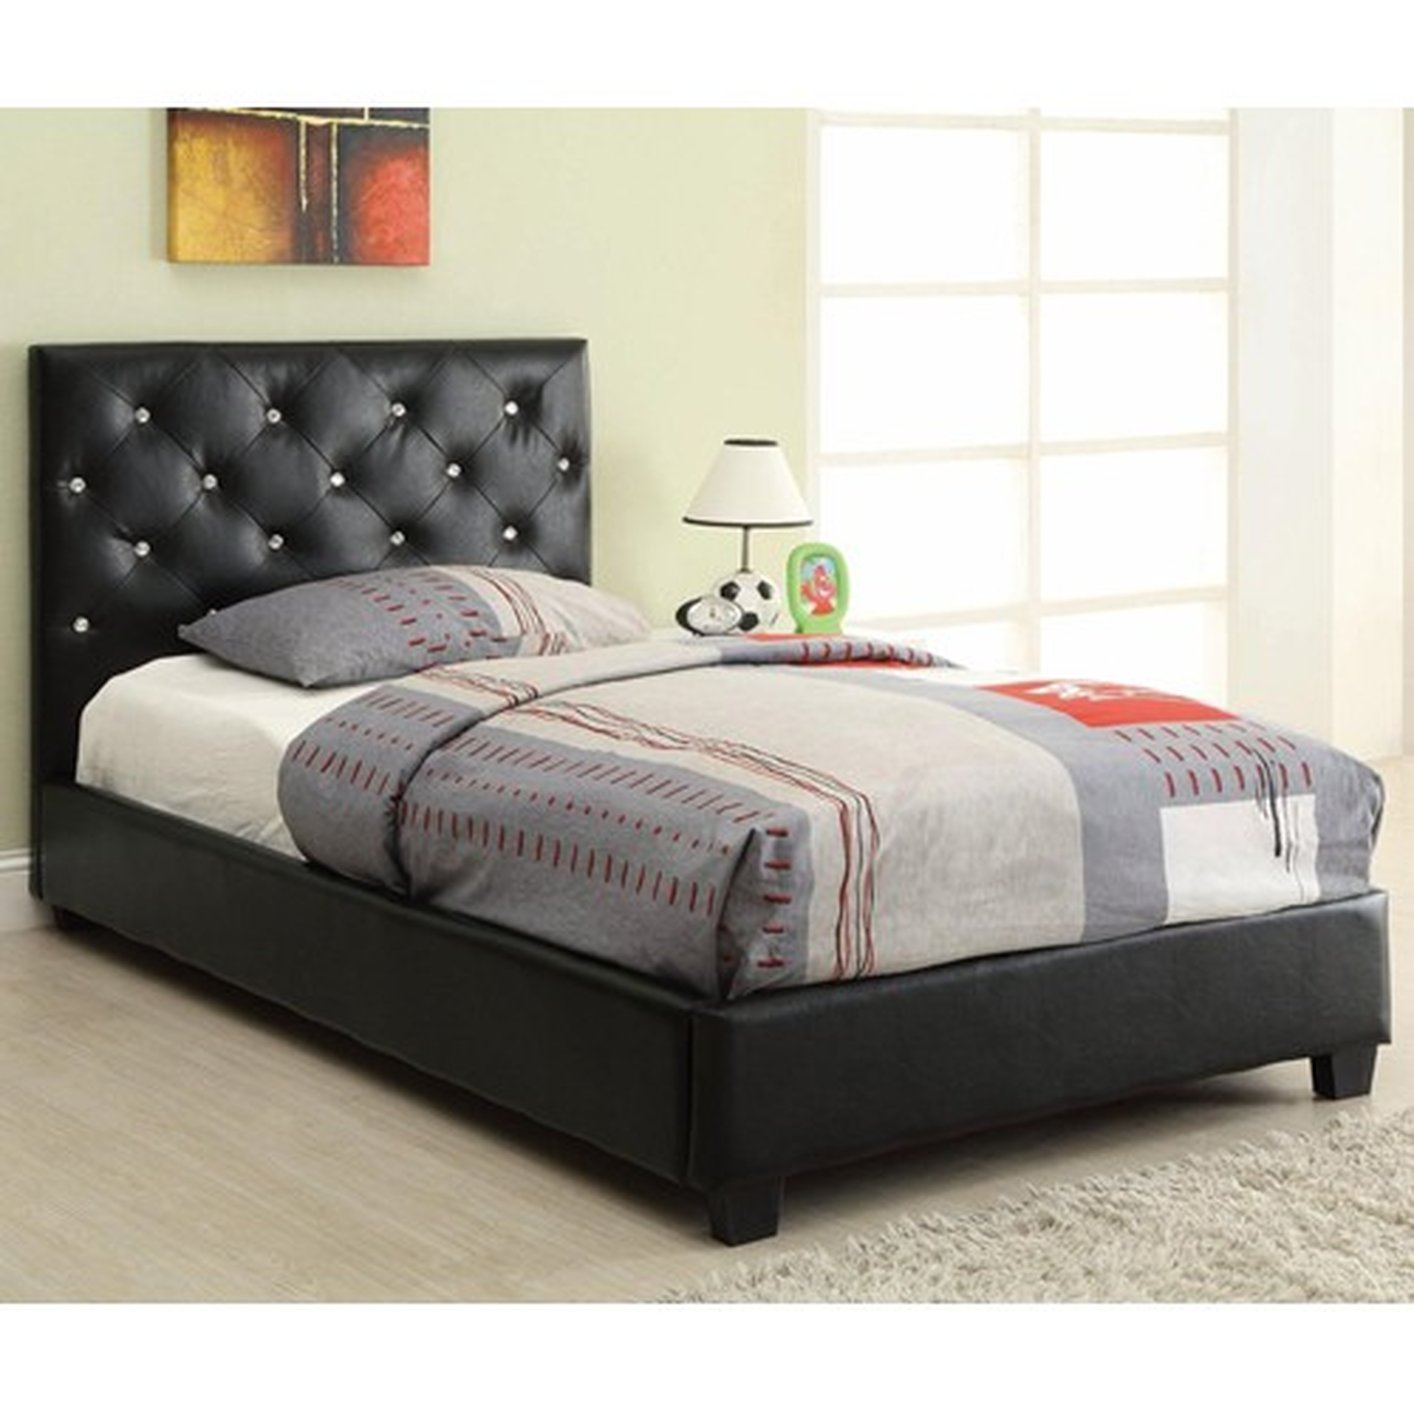 Coaster 300391t Black Twin Size Leather Bed Steal A Sofa Furniture Outlet Los Angeles Ca: mattress twin size